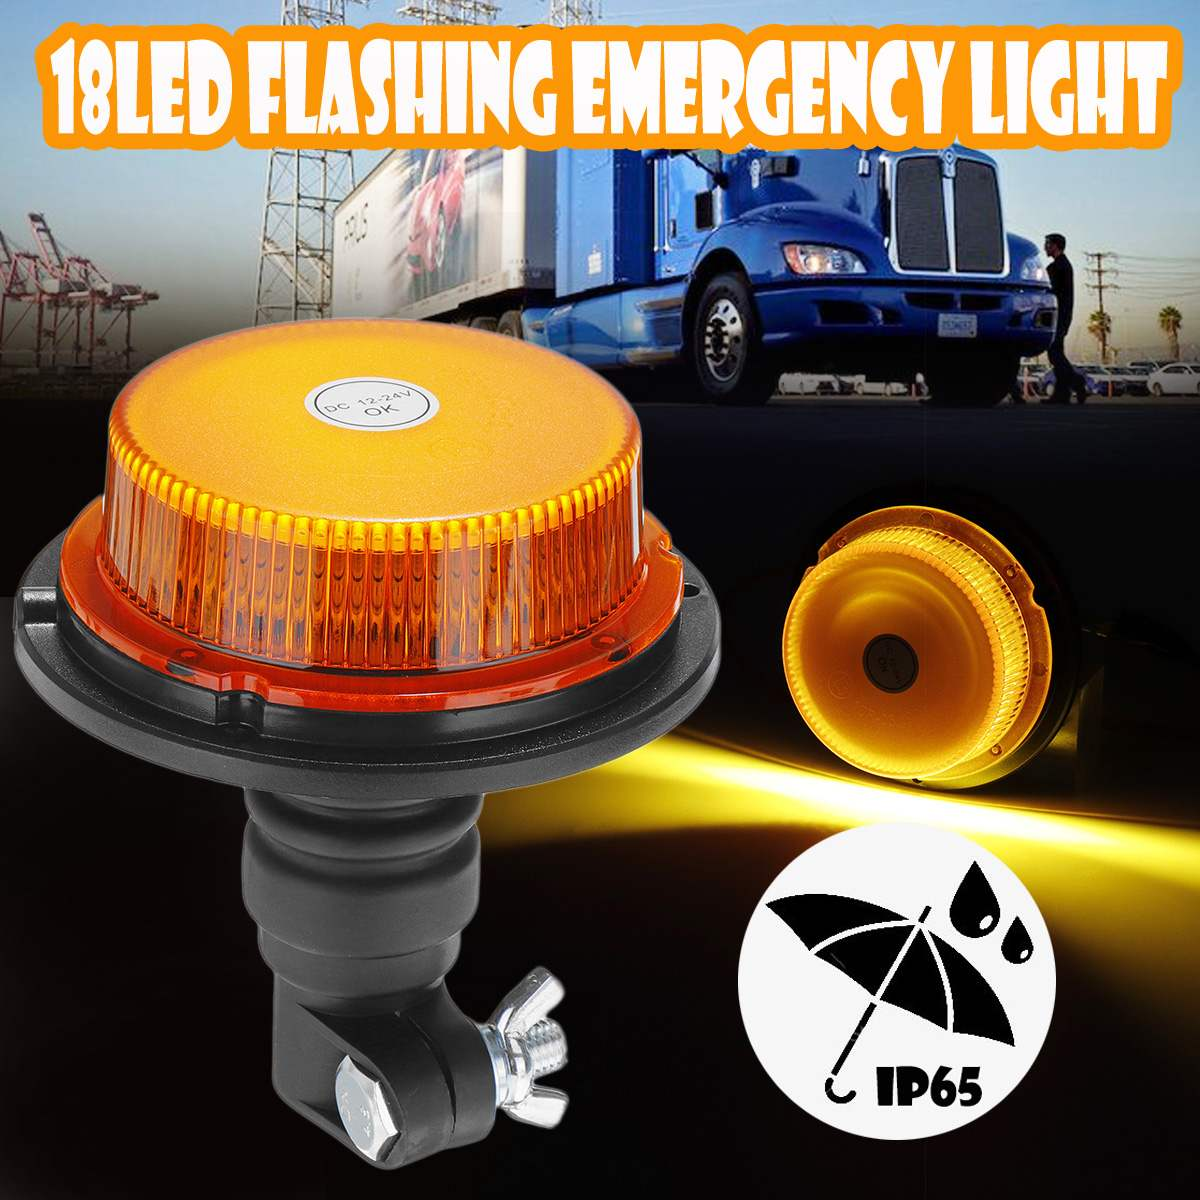 Waterproof Flashing Warning Light LED Car Truck Emergency Light Flashing Firemen Lights 12-24V For Agricultural Vehicle Tractor